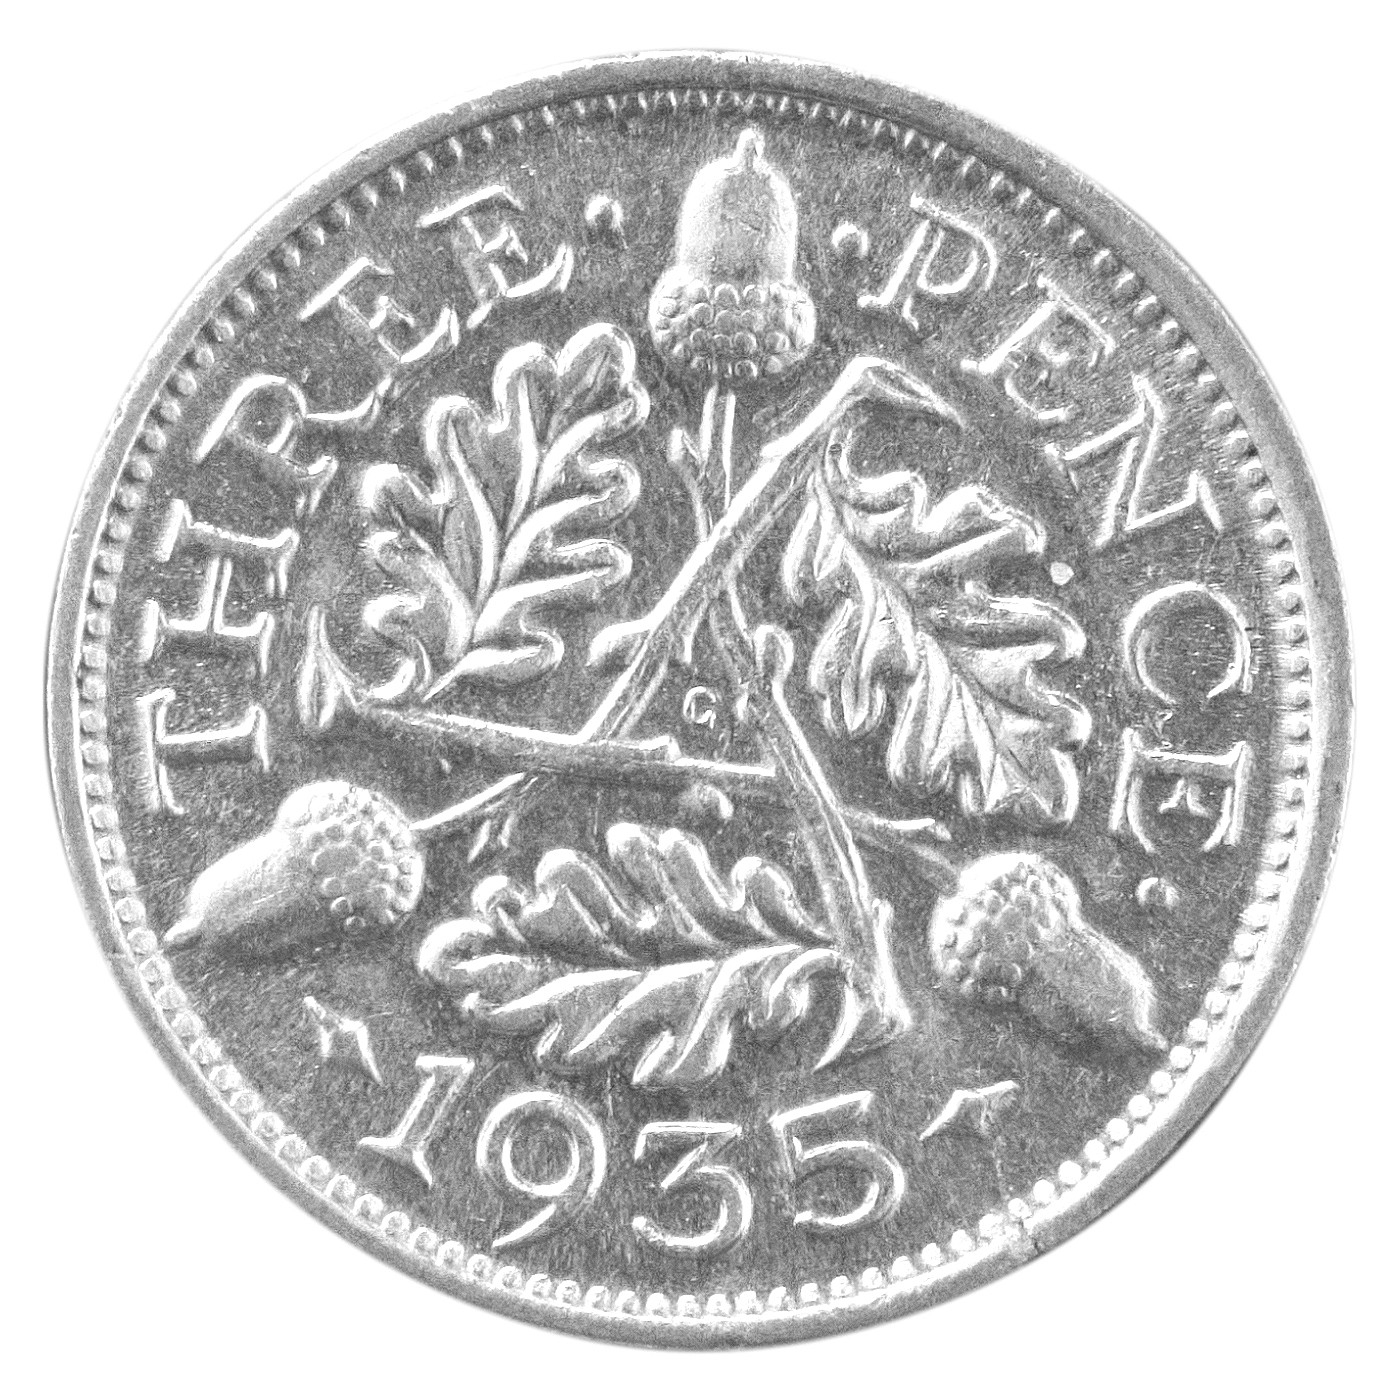 The threepence is the longest serving British coin and was in circulation for 500 years